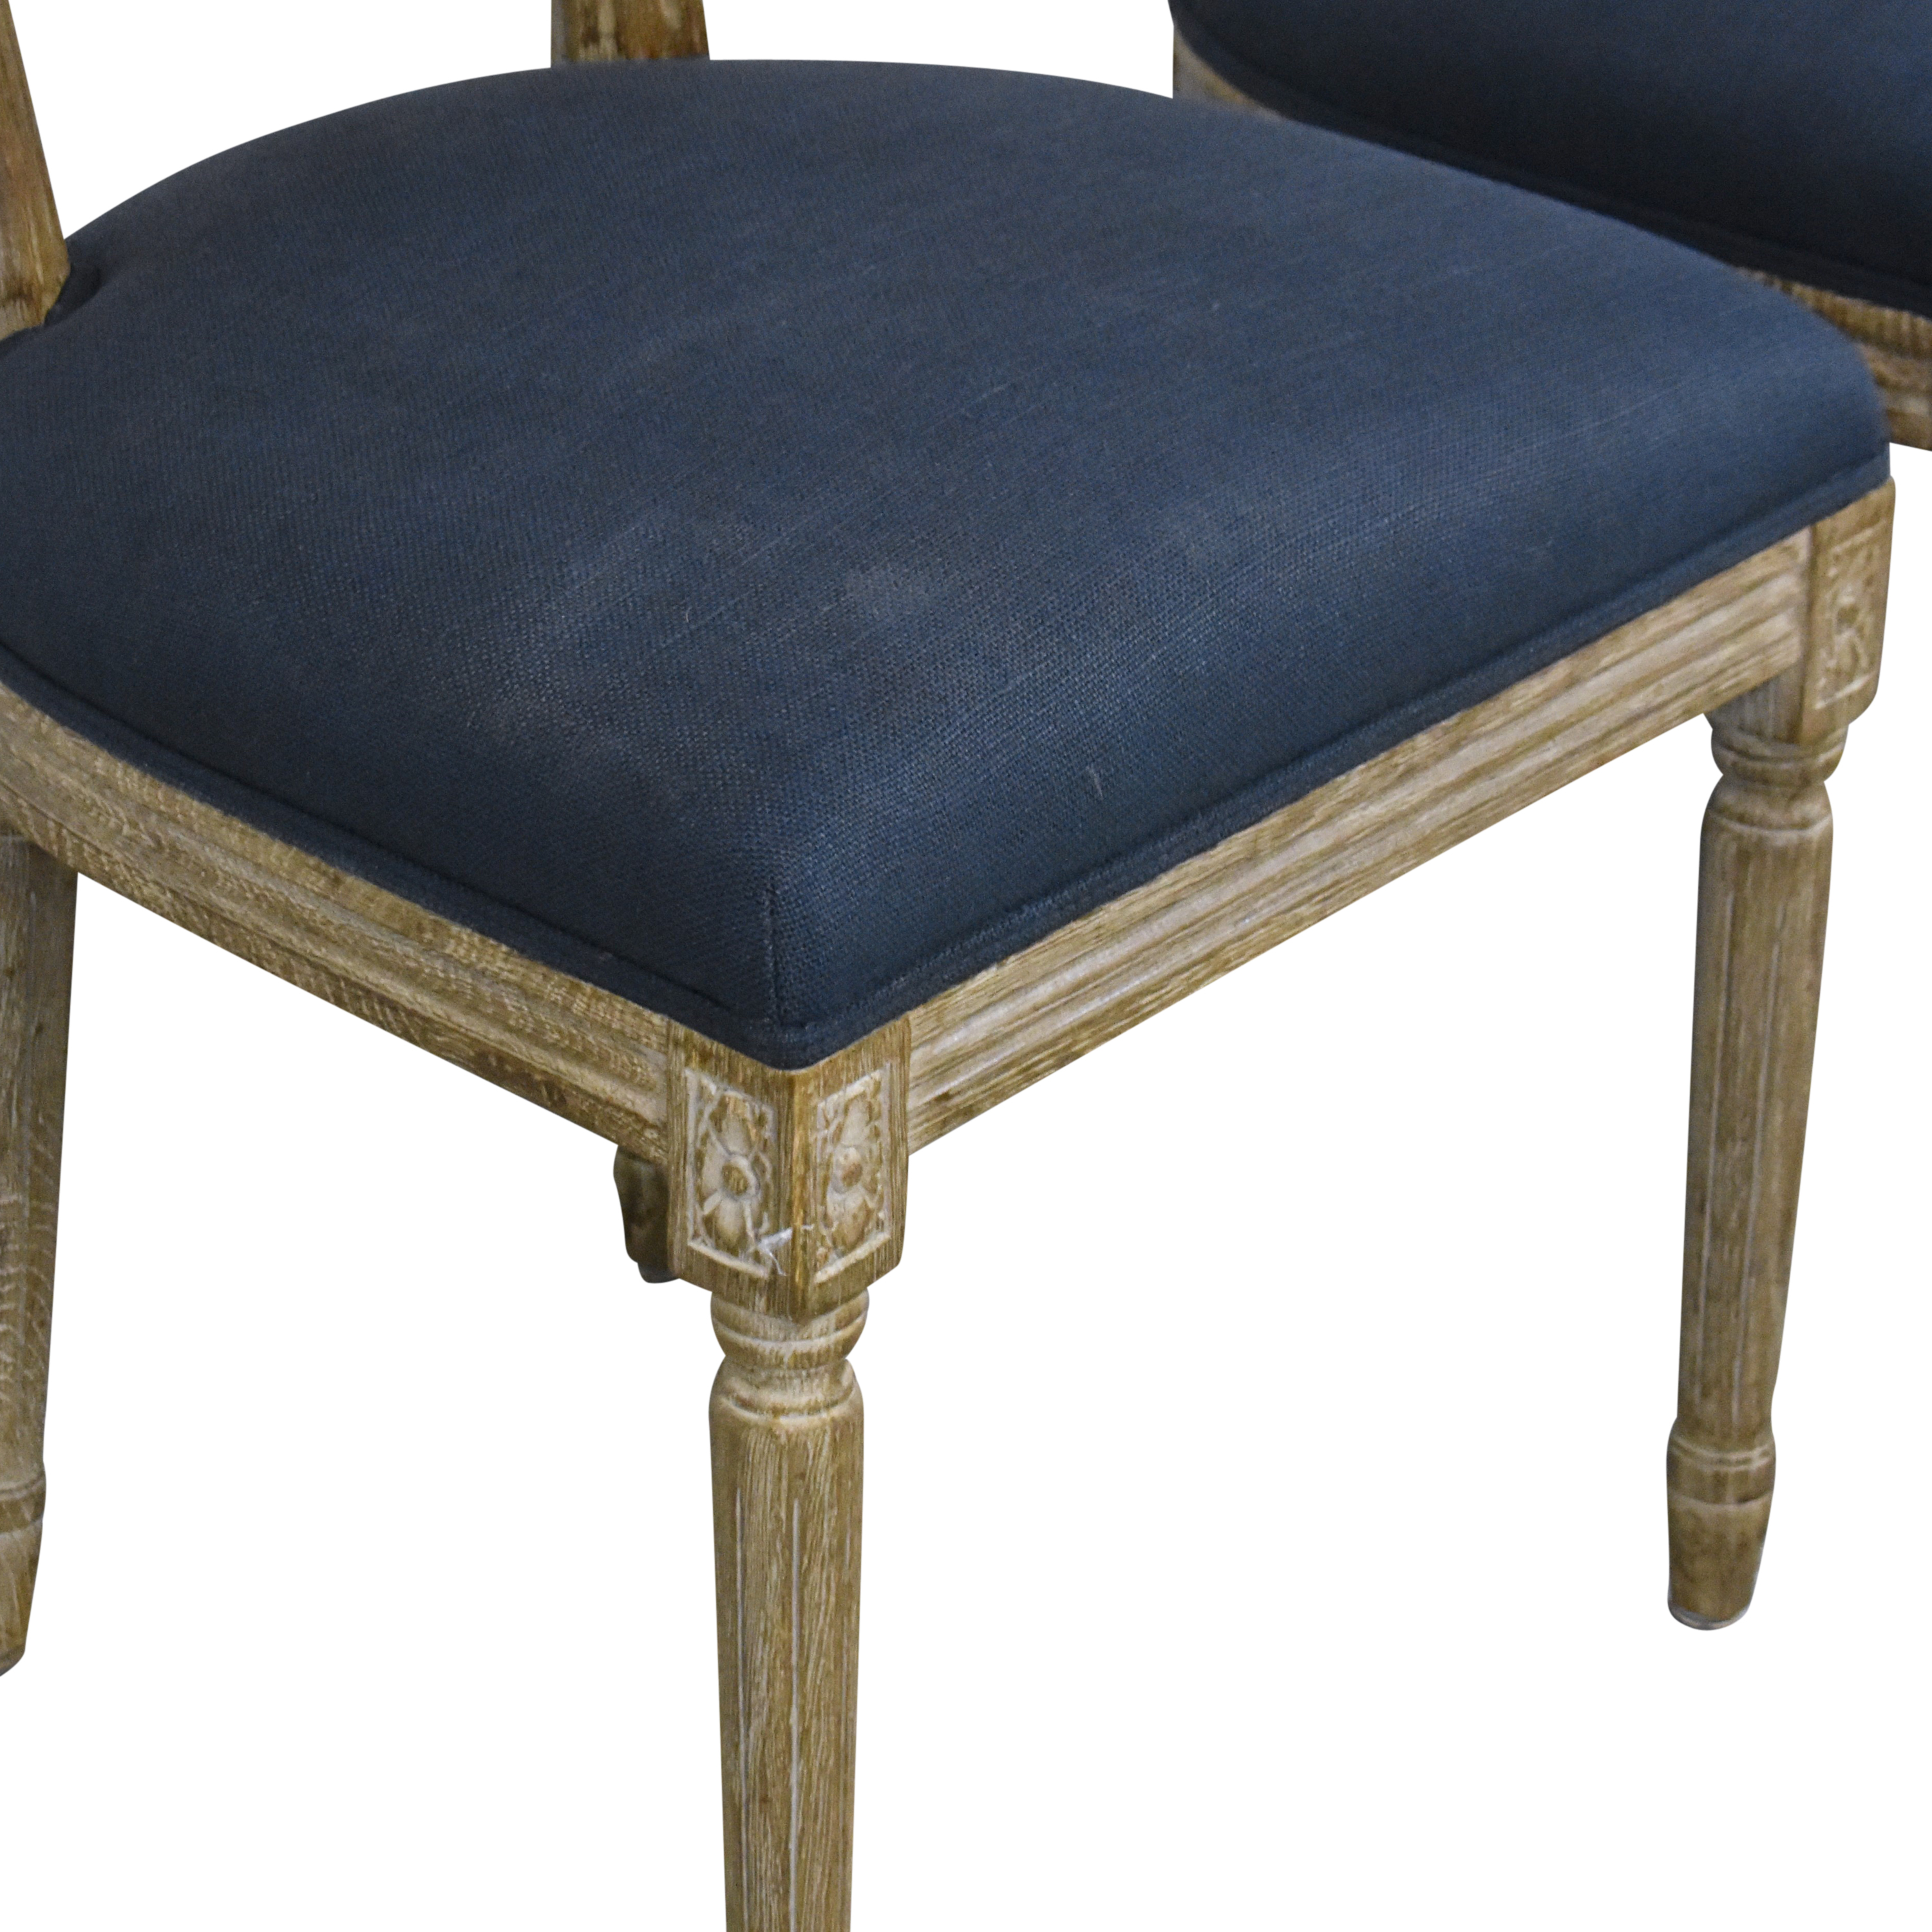 Restoration Hardware Restoration Hardware Vintage French Round Dining Chairs Dining Chairs